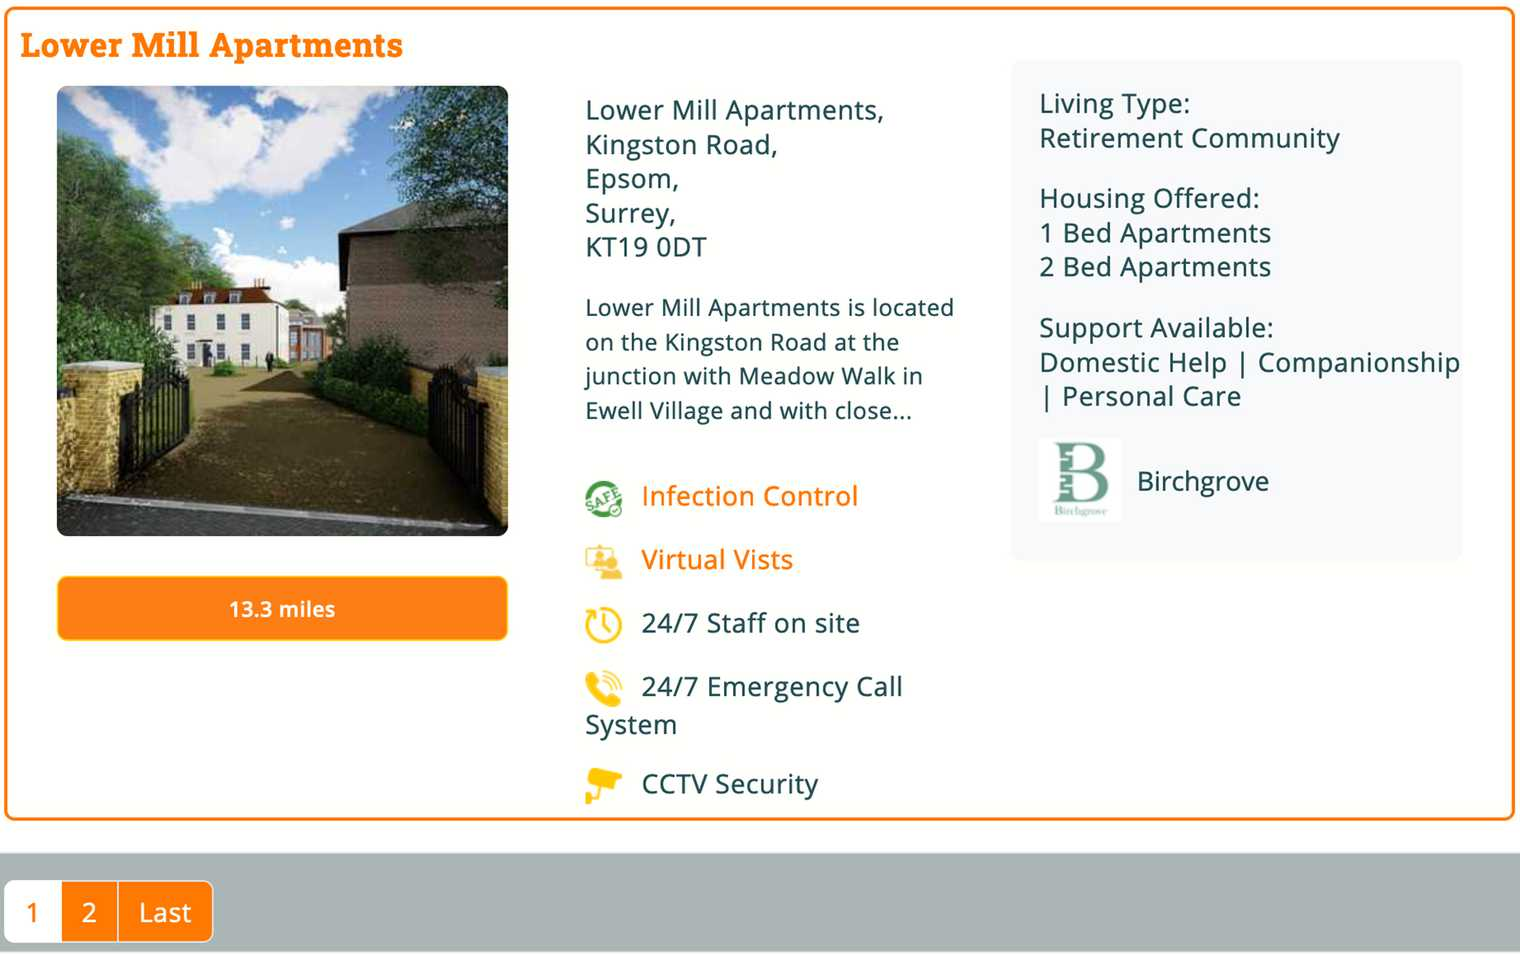 Lower Mill Apartments is just one of the listings that will appear in a search for Retirement Living in Surrey on Autumna.